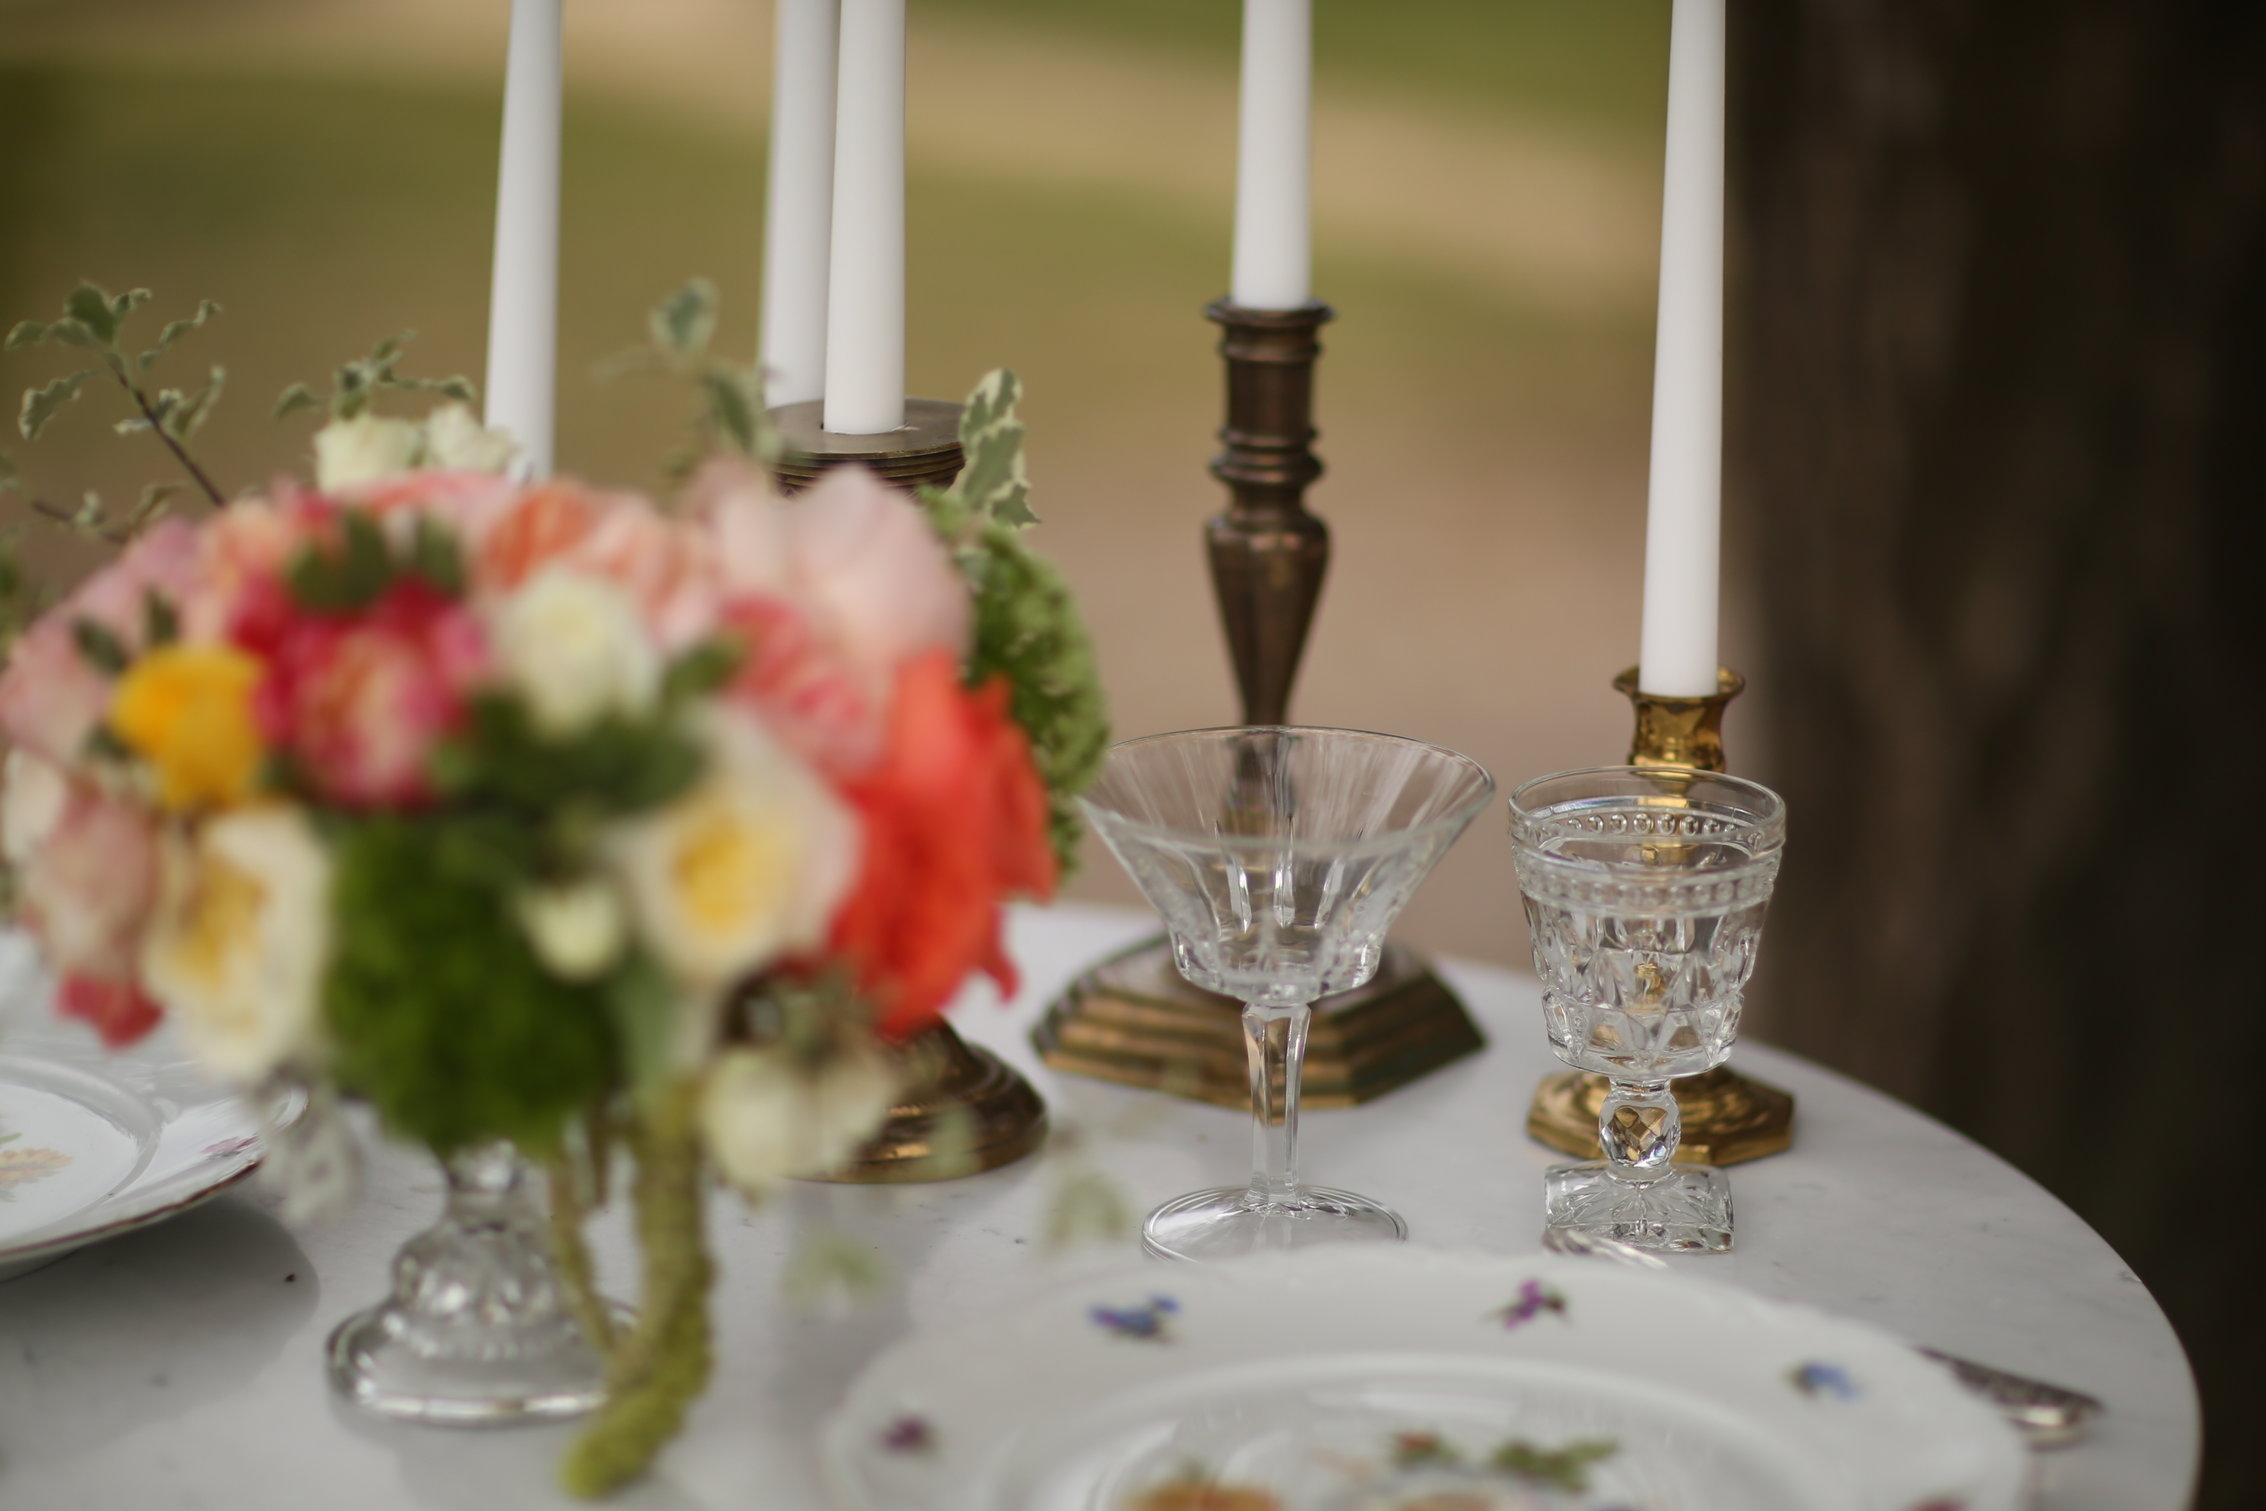 EAPC cut glasses with vintage floral china and brass candlesticks. Spring flowers in a crystal compote.